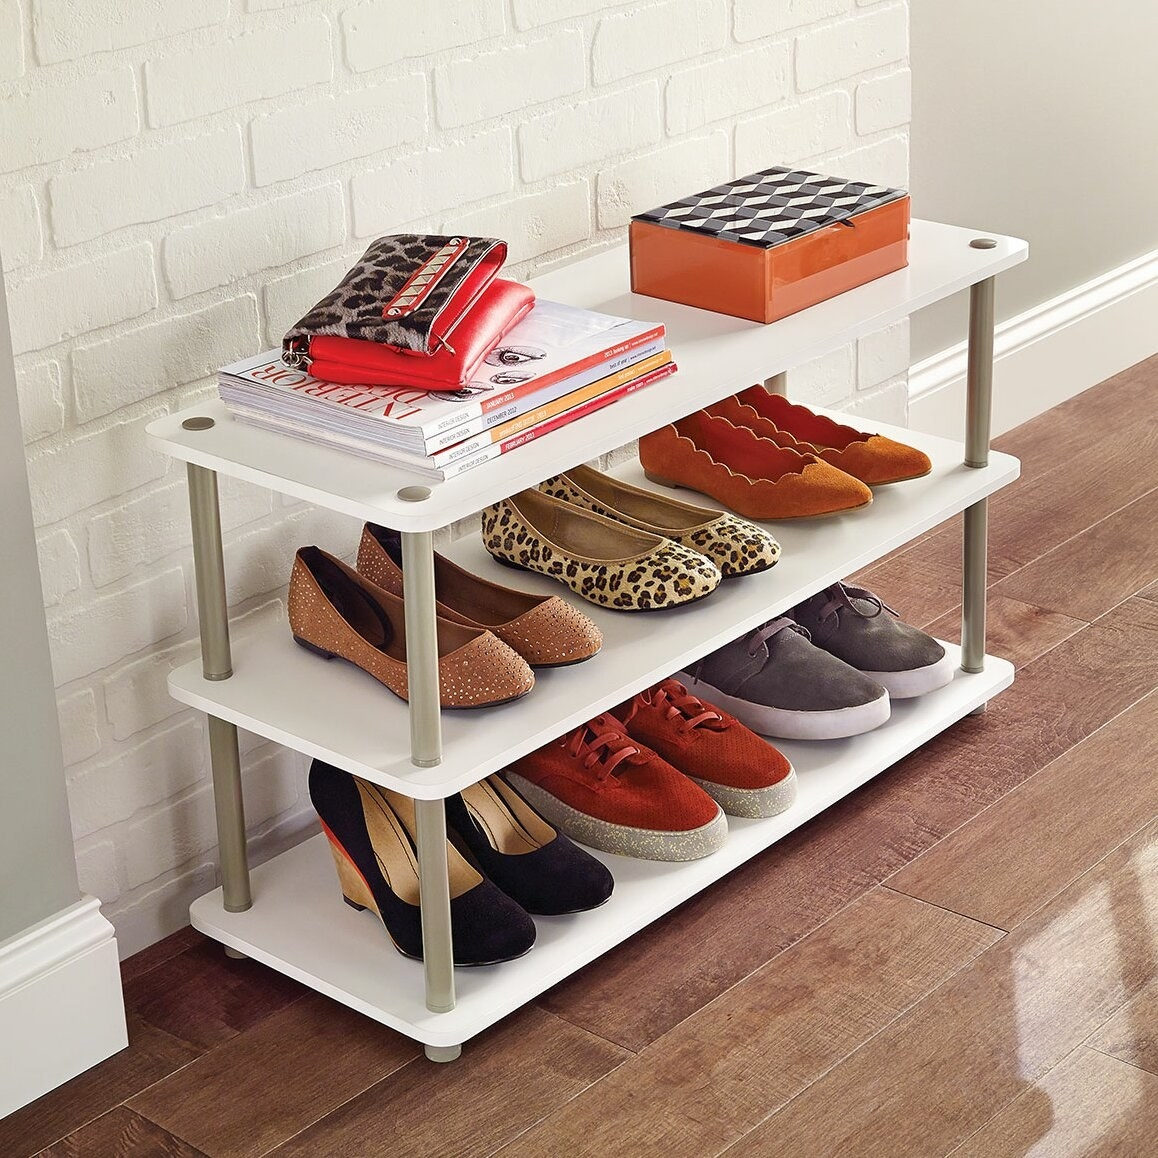 A wooden shoe rack with three shelves that can store up to twelve pairs of shoes